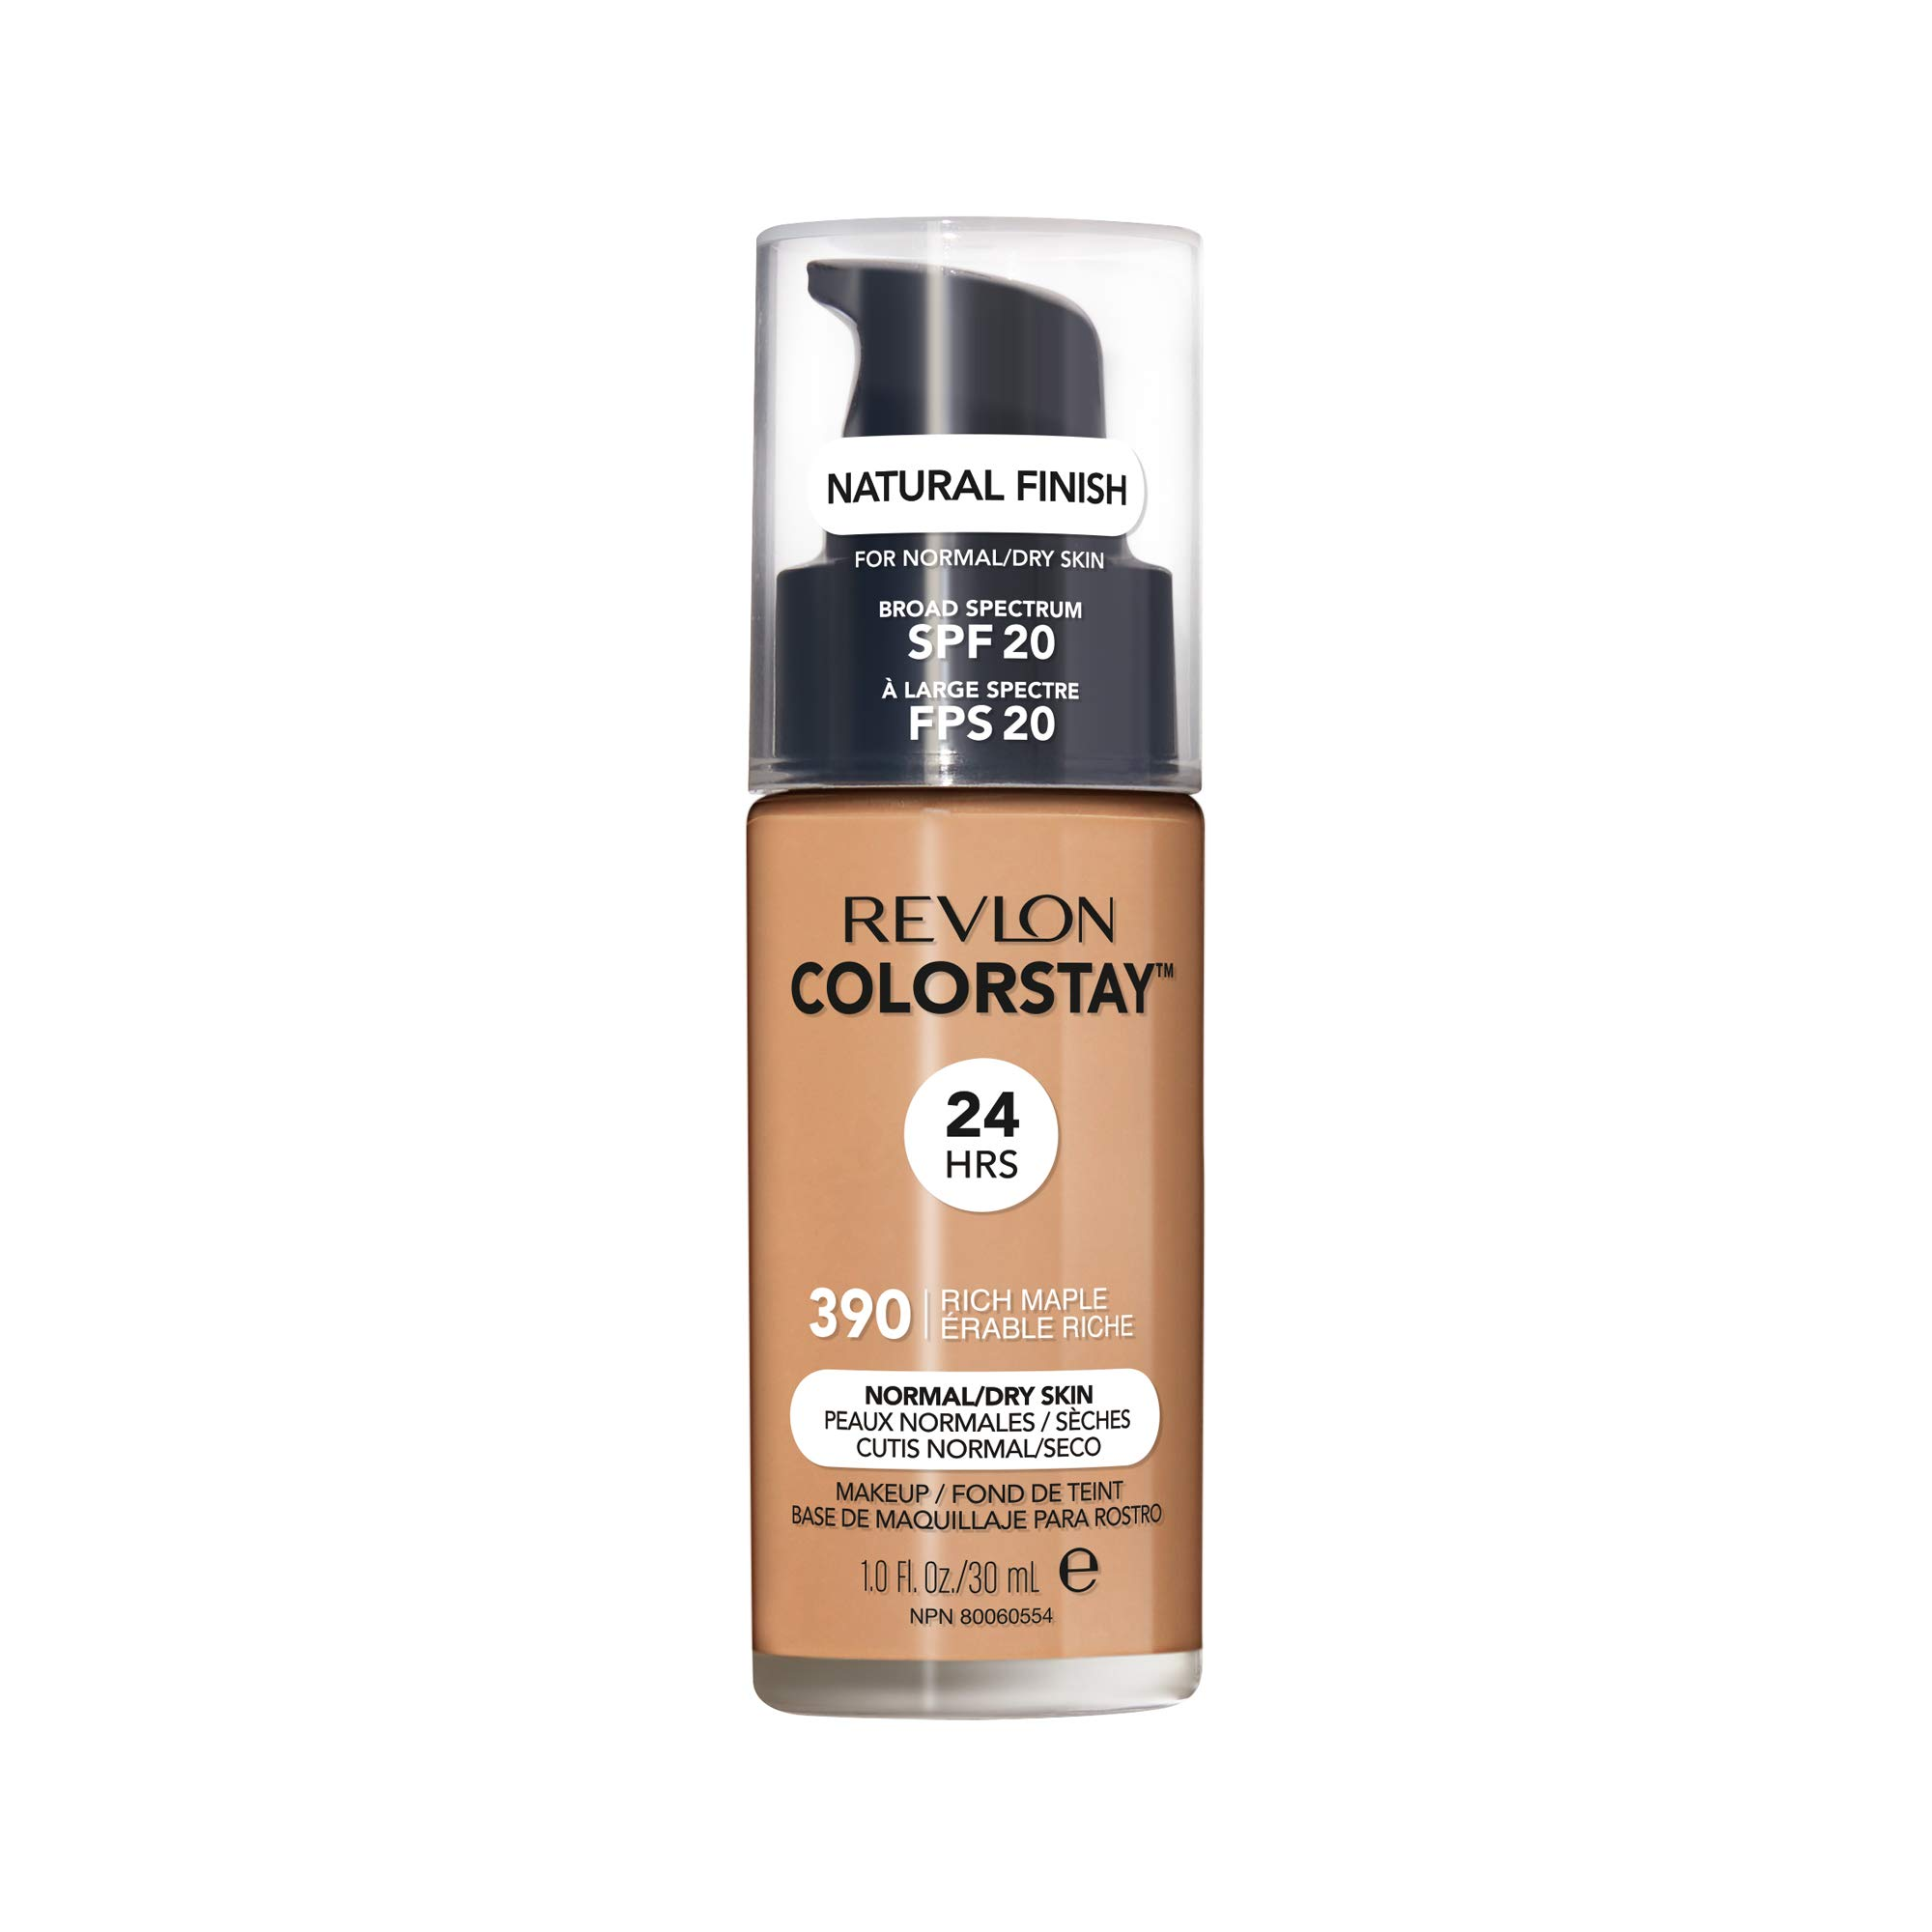 Revlon ColorStay Makeup for Normal/Dry Skin SPF 20, Longwear Liquid Foundation, with Medium-Full Coverage, Natural Finish, Oil Free, 390 Rich Maple, 1.0 oz